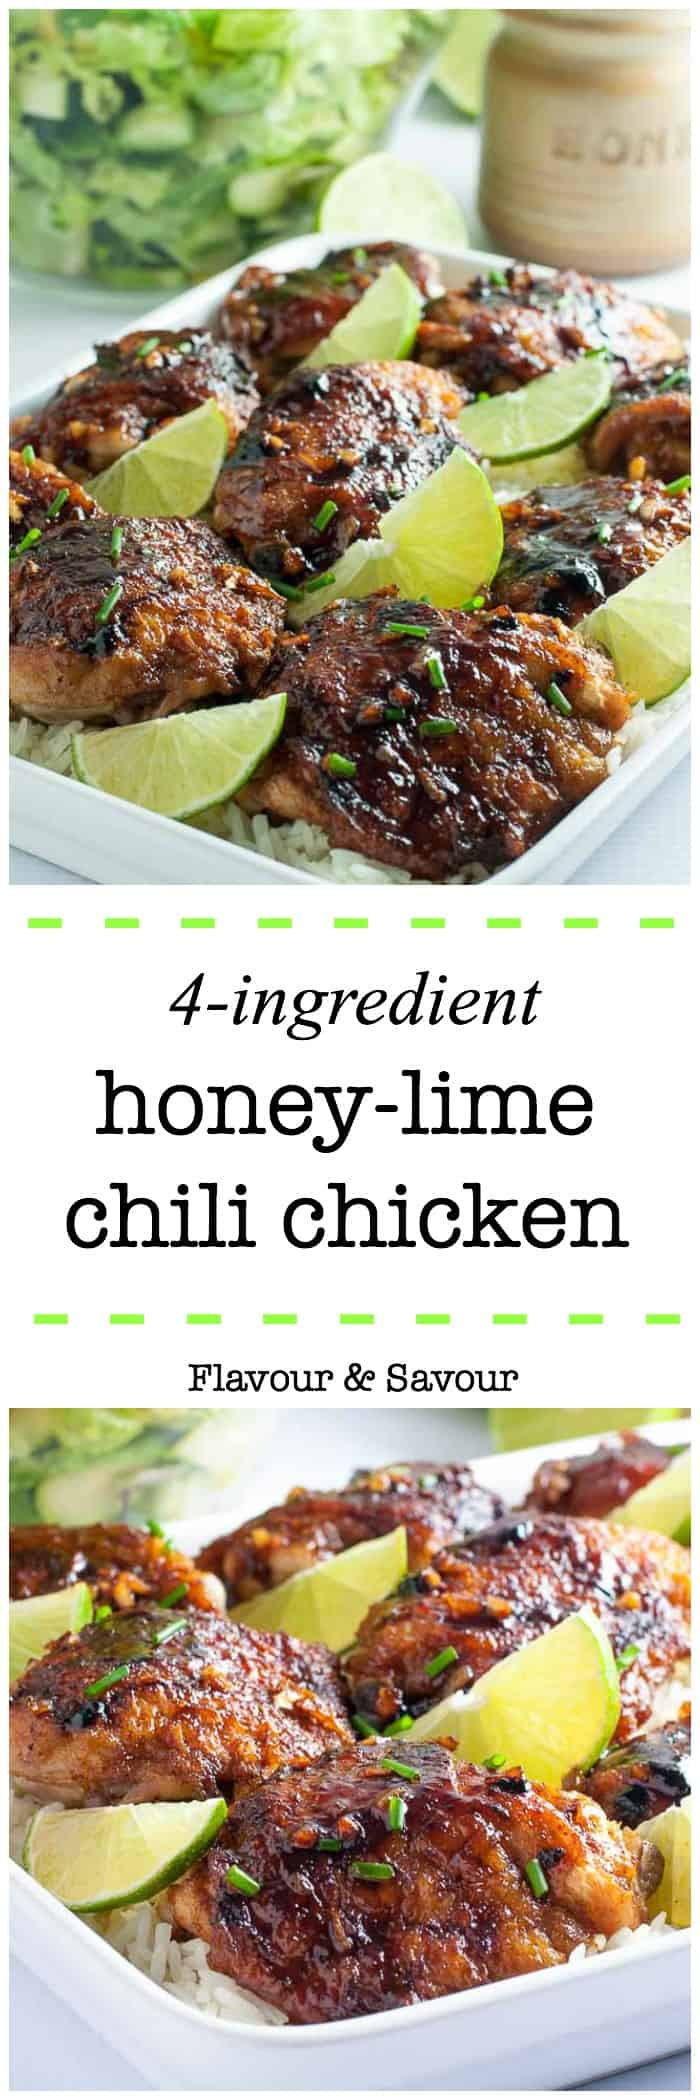 This recipe for 4-Ingredient Honey Lime Chili Chicken Thighs makes an easy weeknight meal. It's succulently sweet and spicy!  An easy one-pot dish. Simple instructions for how to sear chicken without having it stick to the pan! |www.flavourandsavour.com